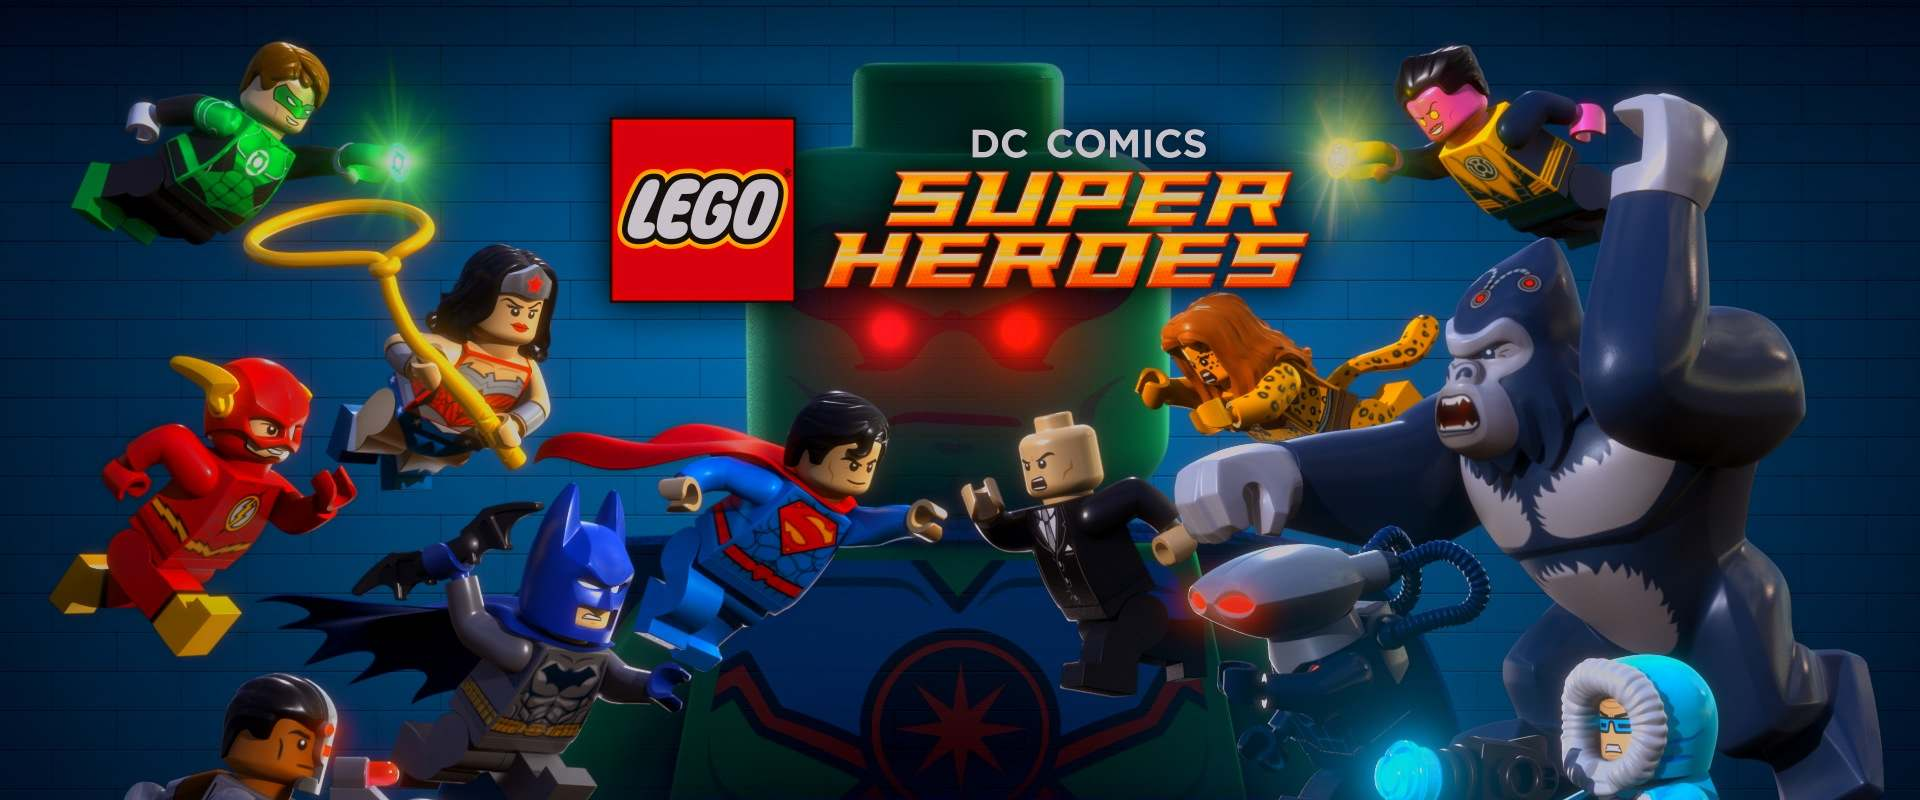 LEGO DC Super Heroes: Justice League - Attack of the Legion of Doom! background 1